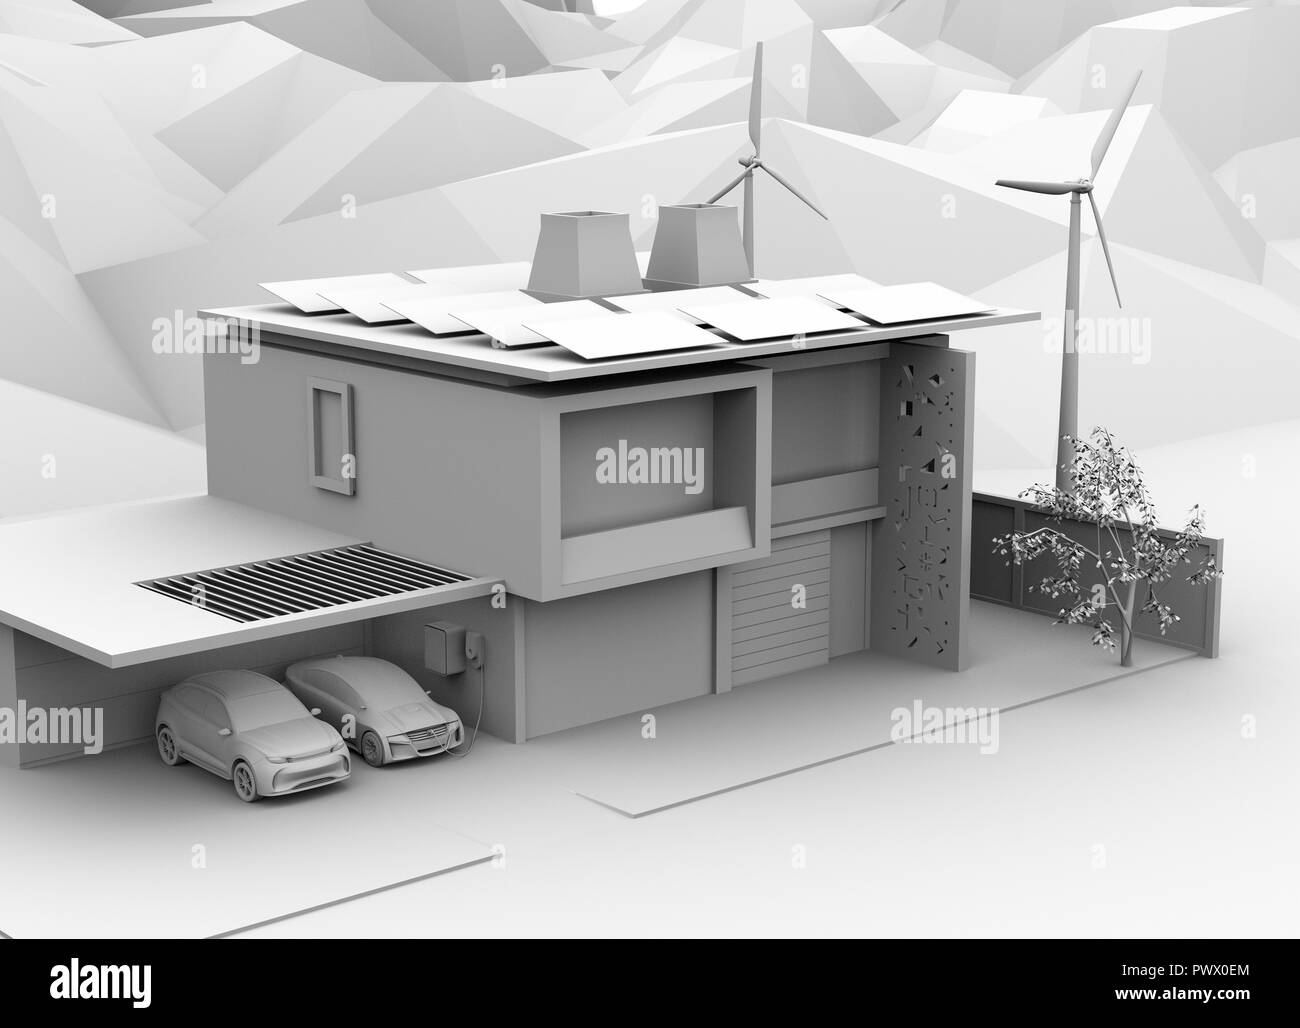 Clay rendering of electric vehicle recharging in garage. The smart home powered by solar panels and wind turbine. 3D rendering image. - Stock Image